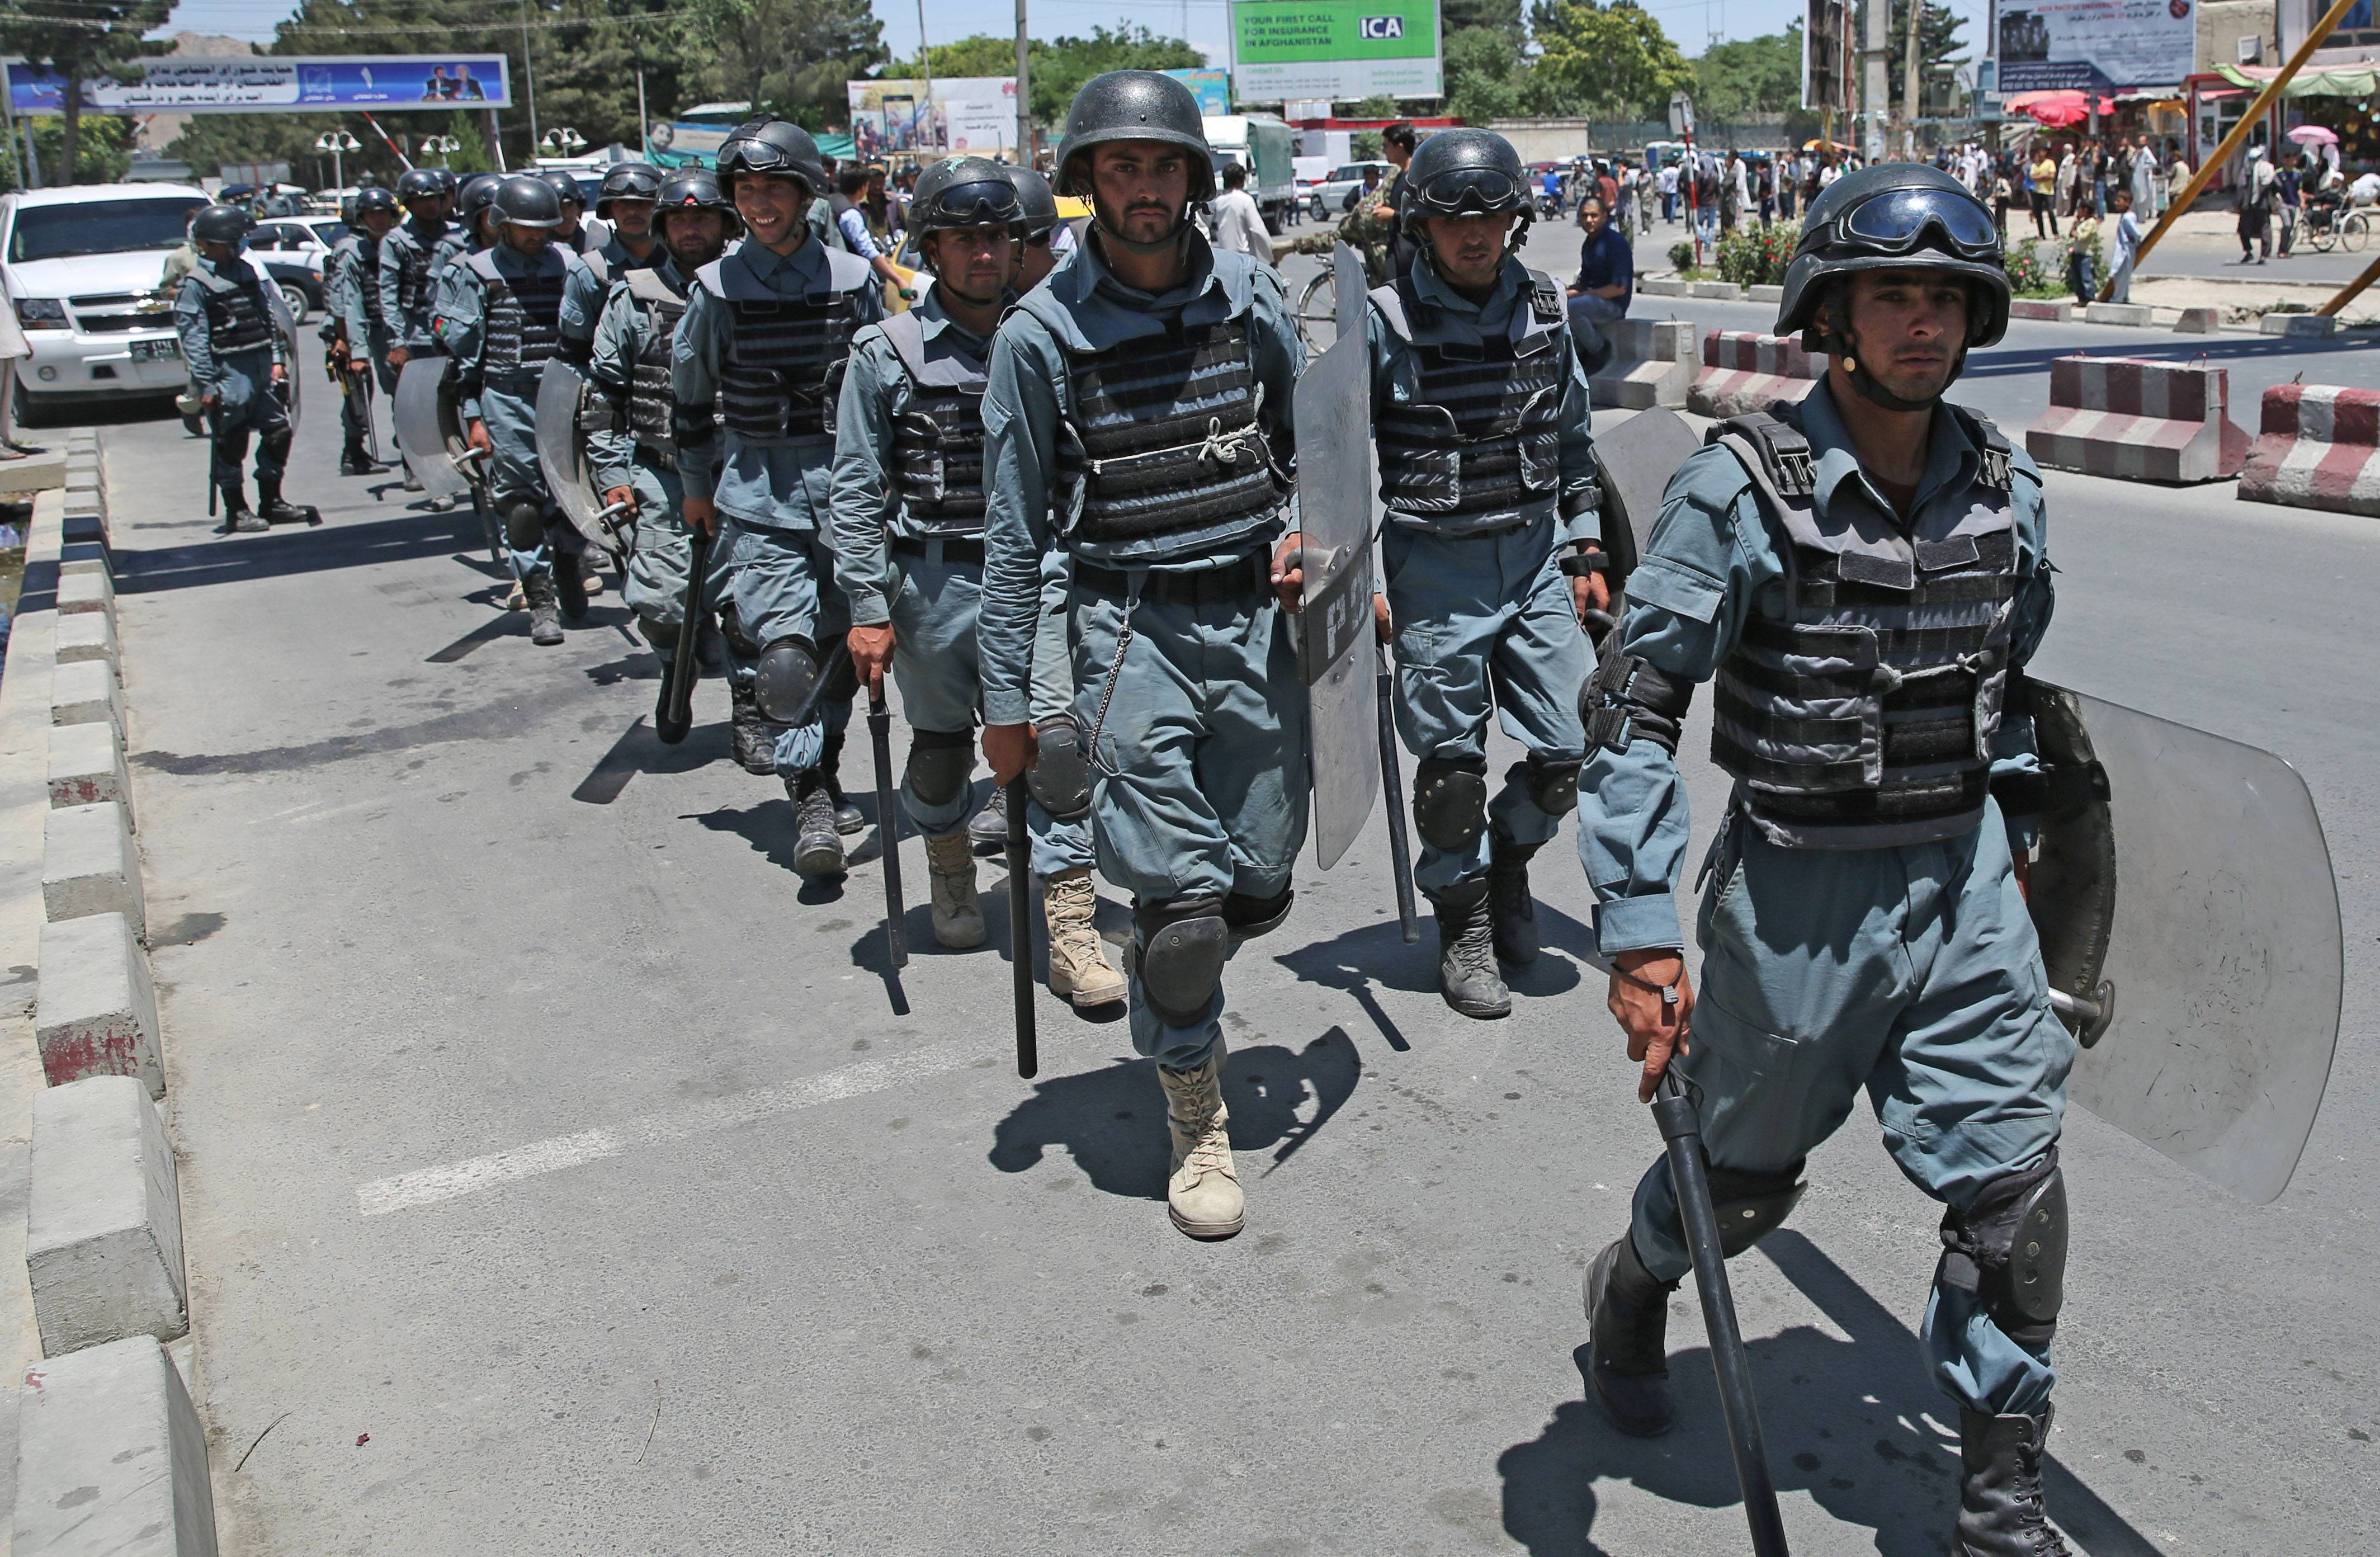 Afghanistan police forces secure an area as supporters of presidential candidate Abdullah Abdullah hold a protest in Kabul, Afghanistan, Saturday, June 21. Former Foreign Minister Abdullah, who is running against Ashraf Ghani Ahmadzai, a former finance minister, has accused electoral officials and others of trying to rig the June 14 vote against him.